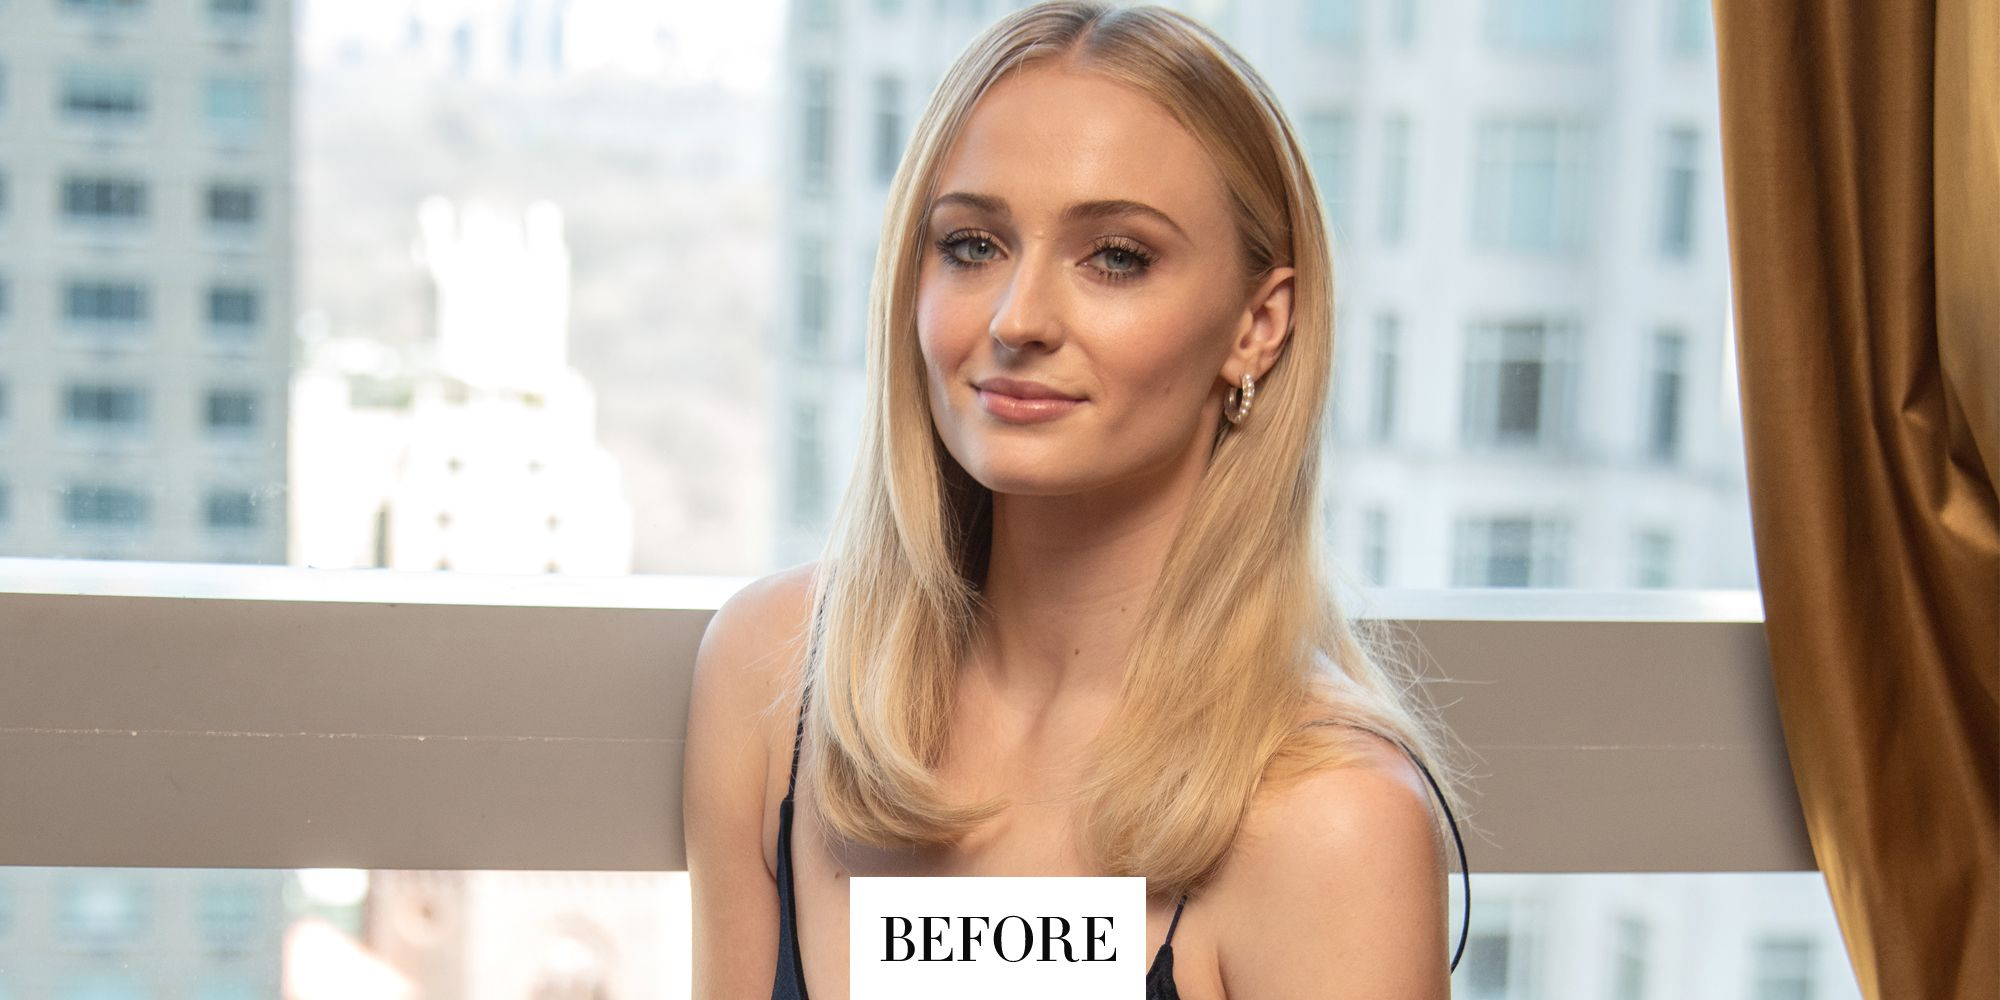 Sophie Turner Looks So Good With Her New Bangs